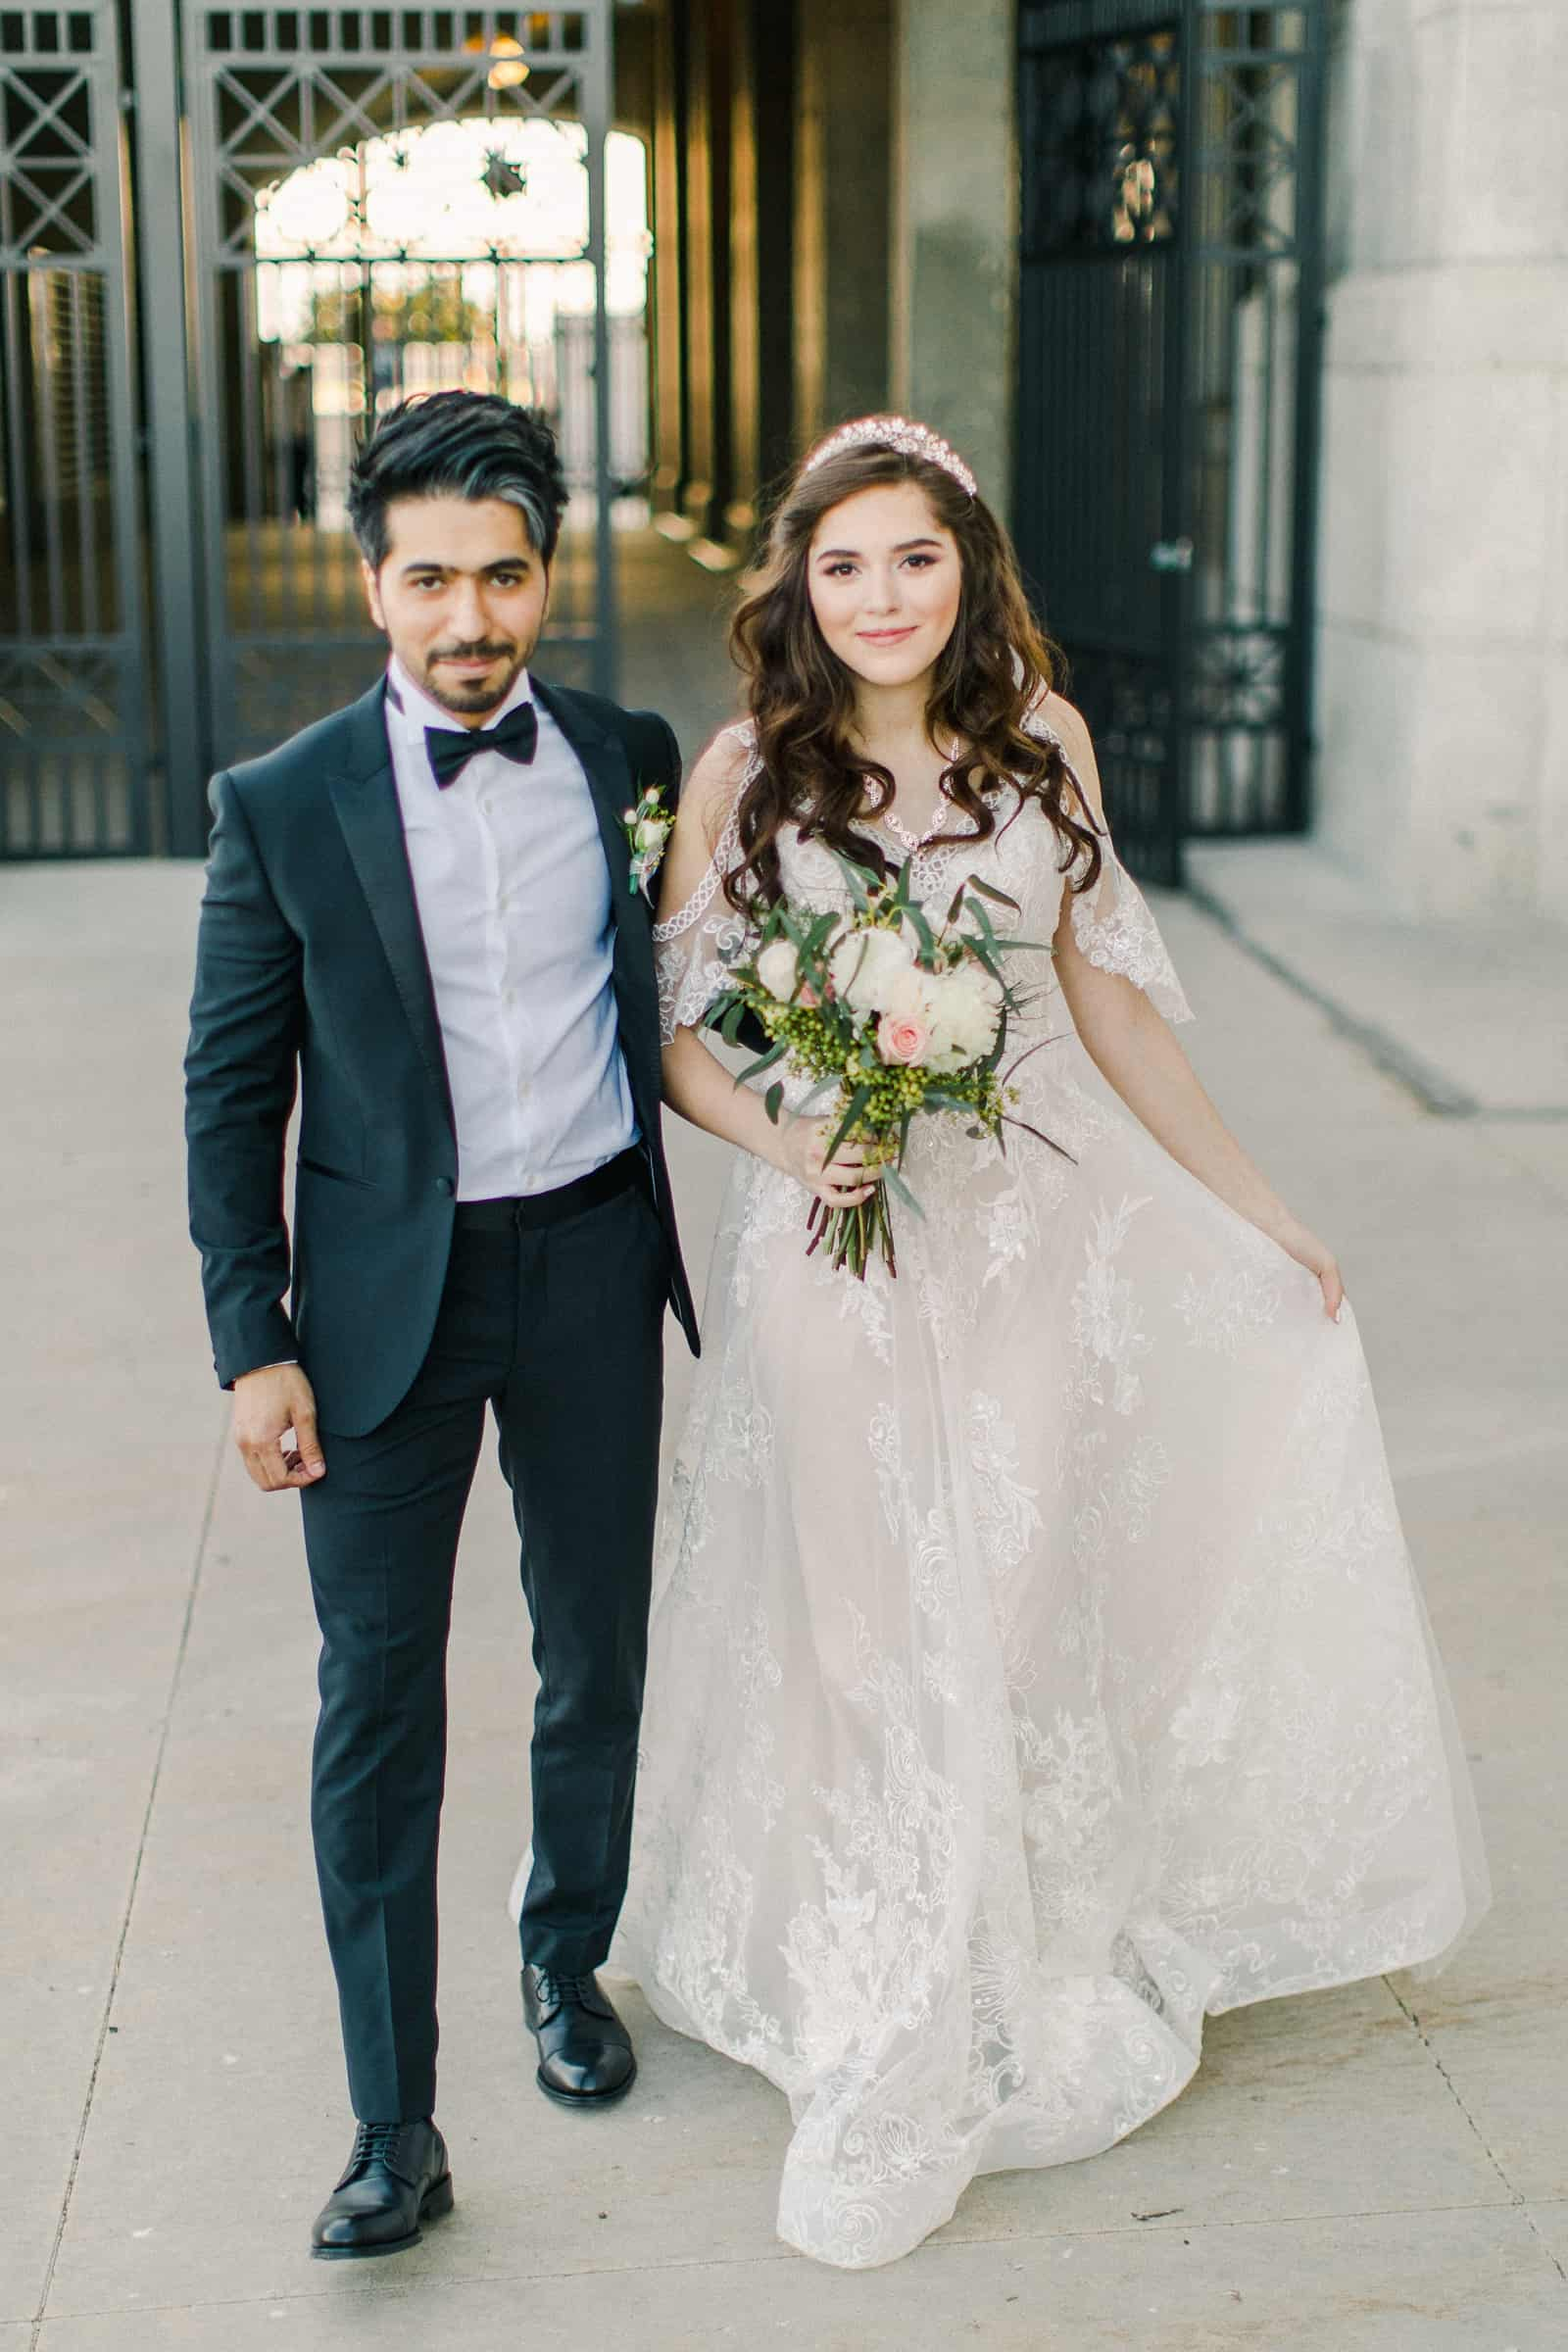 Palestinian Iranian Bride and Groom, Utah Wedding Photography at the Utah State Capitol, travel destination wedding photographer, bride in boho lace Middle Eastern wedding dress